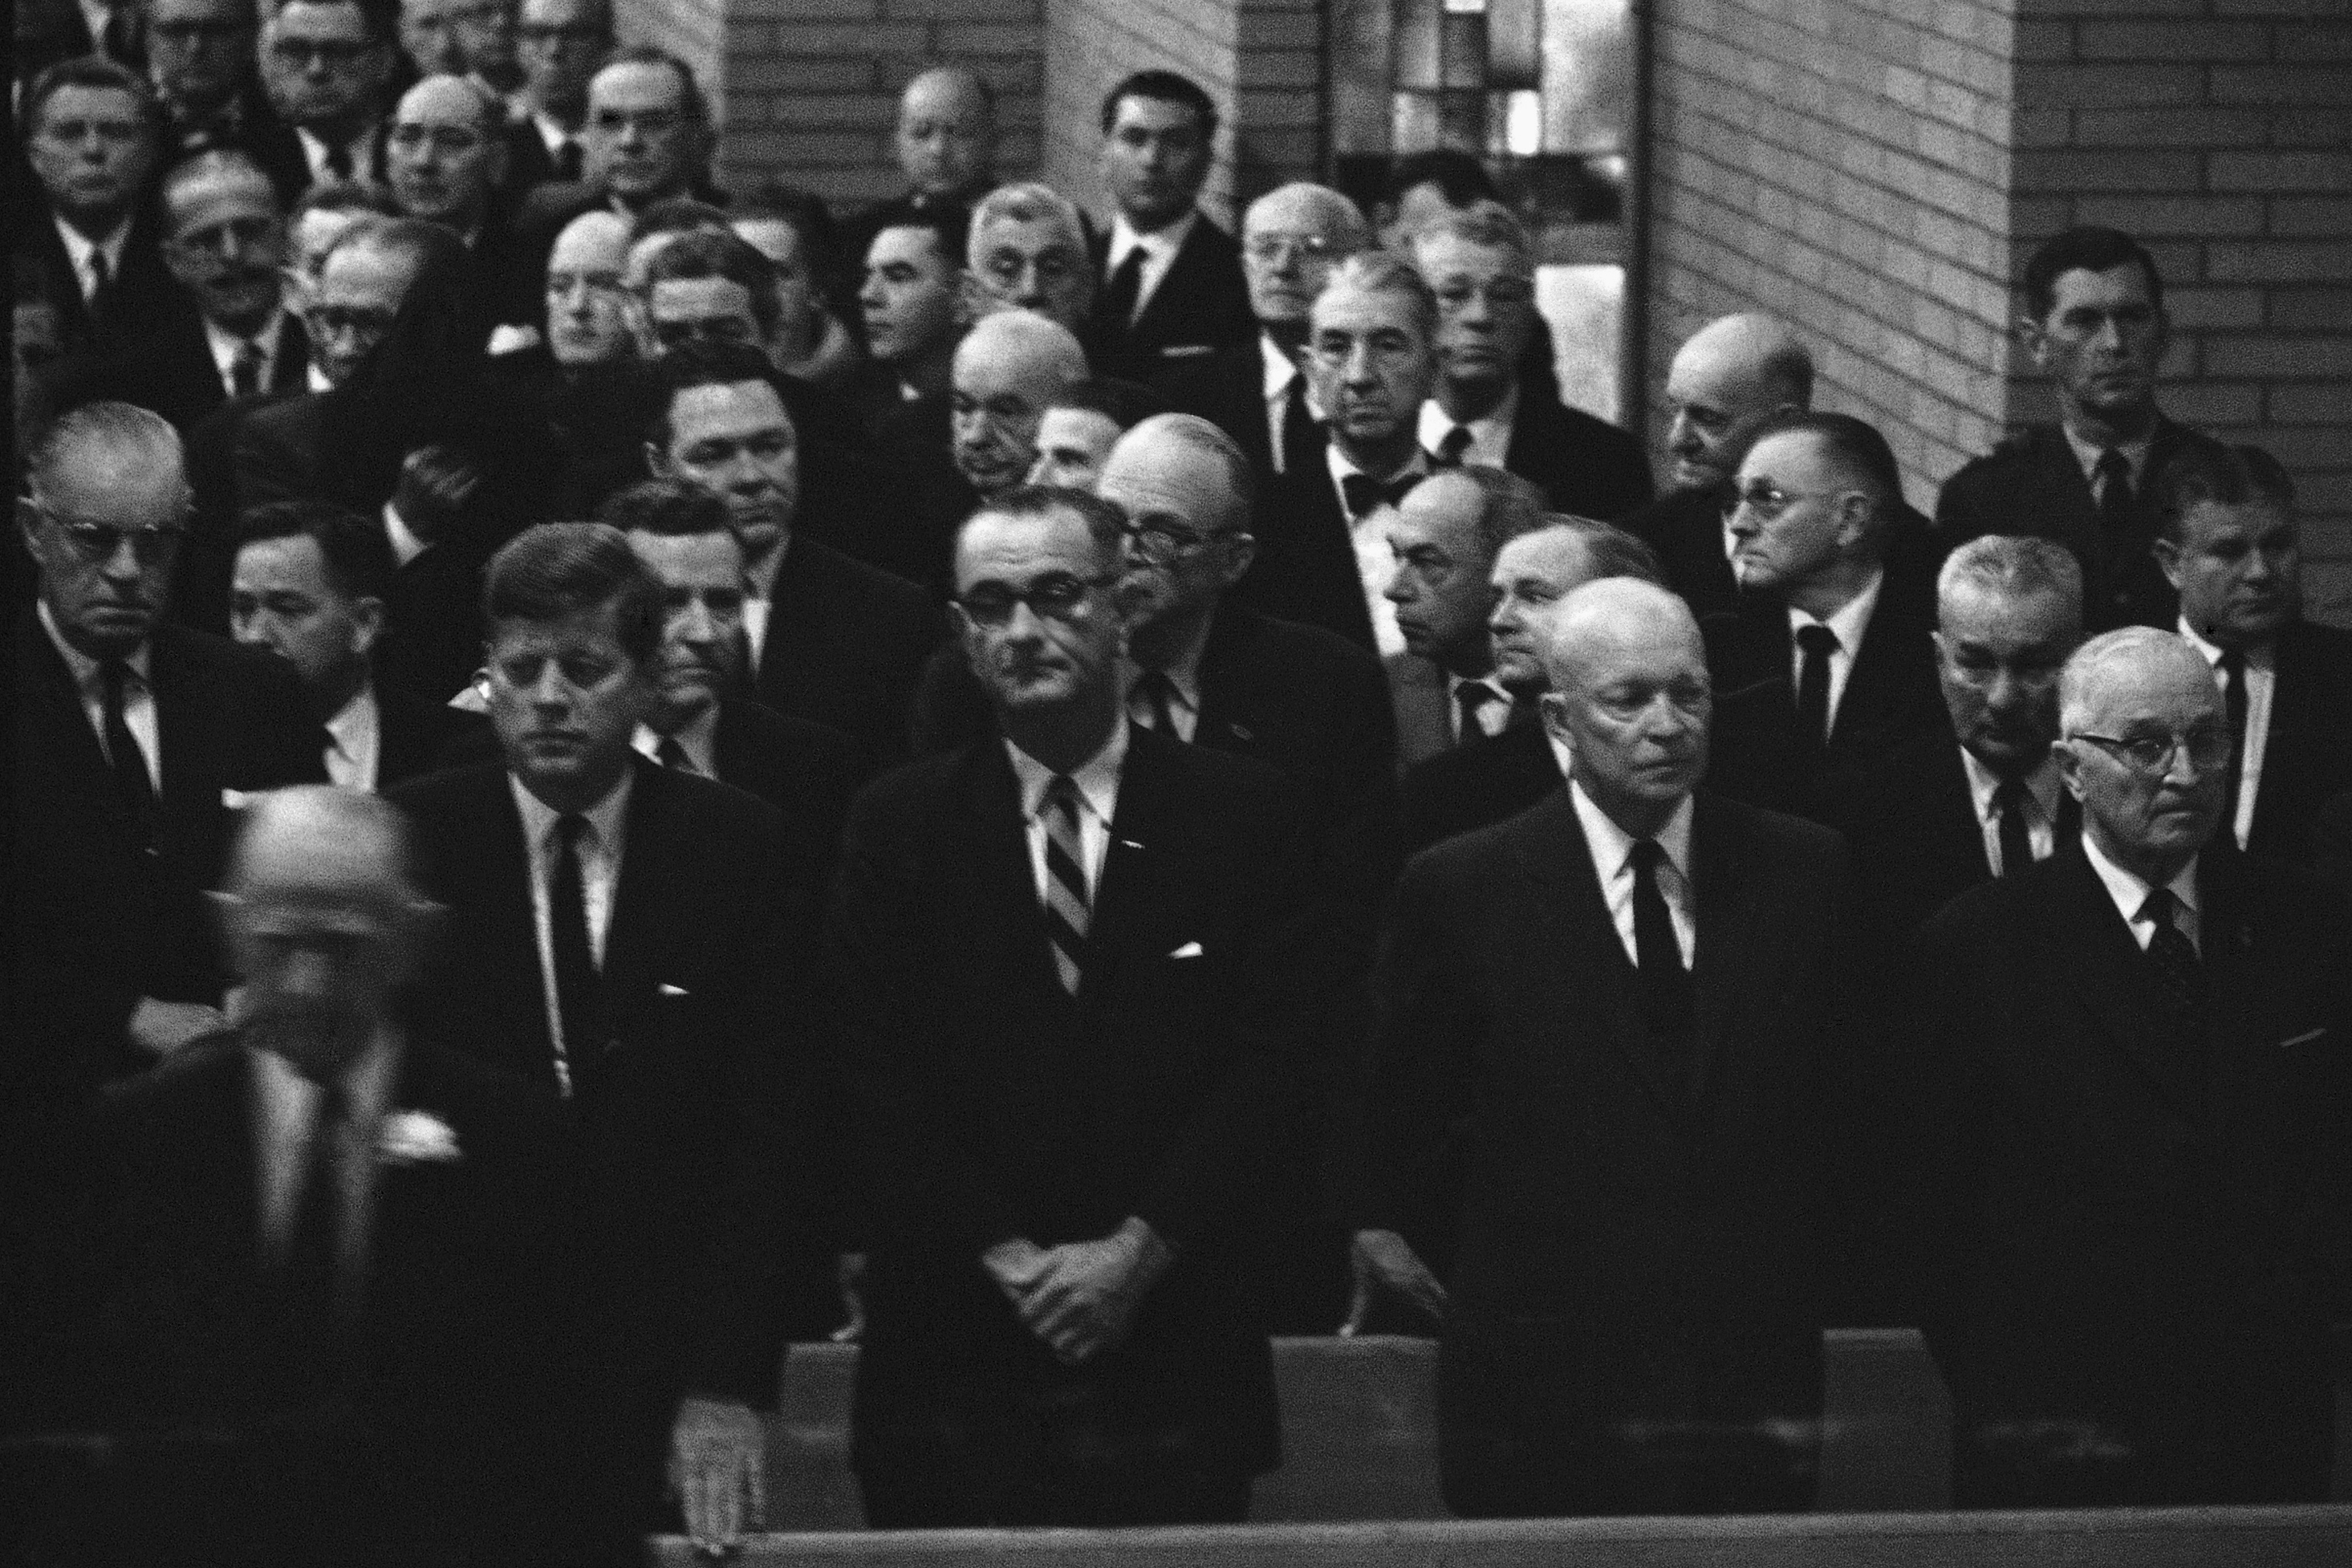 Attending the 1961 funeral services for former House Speaker Sam Rayburn are President John F. Kennedy, Vice President Lyndon Johnson, and former presidents Dwight D. Eisenhower and Harry S. Truman.